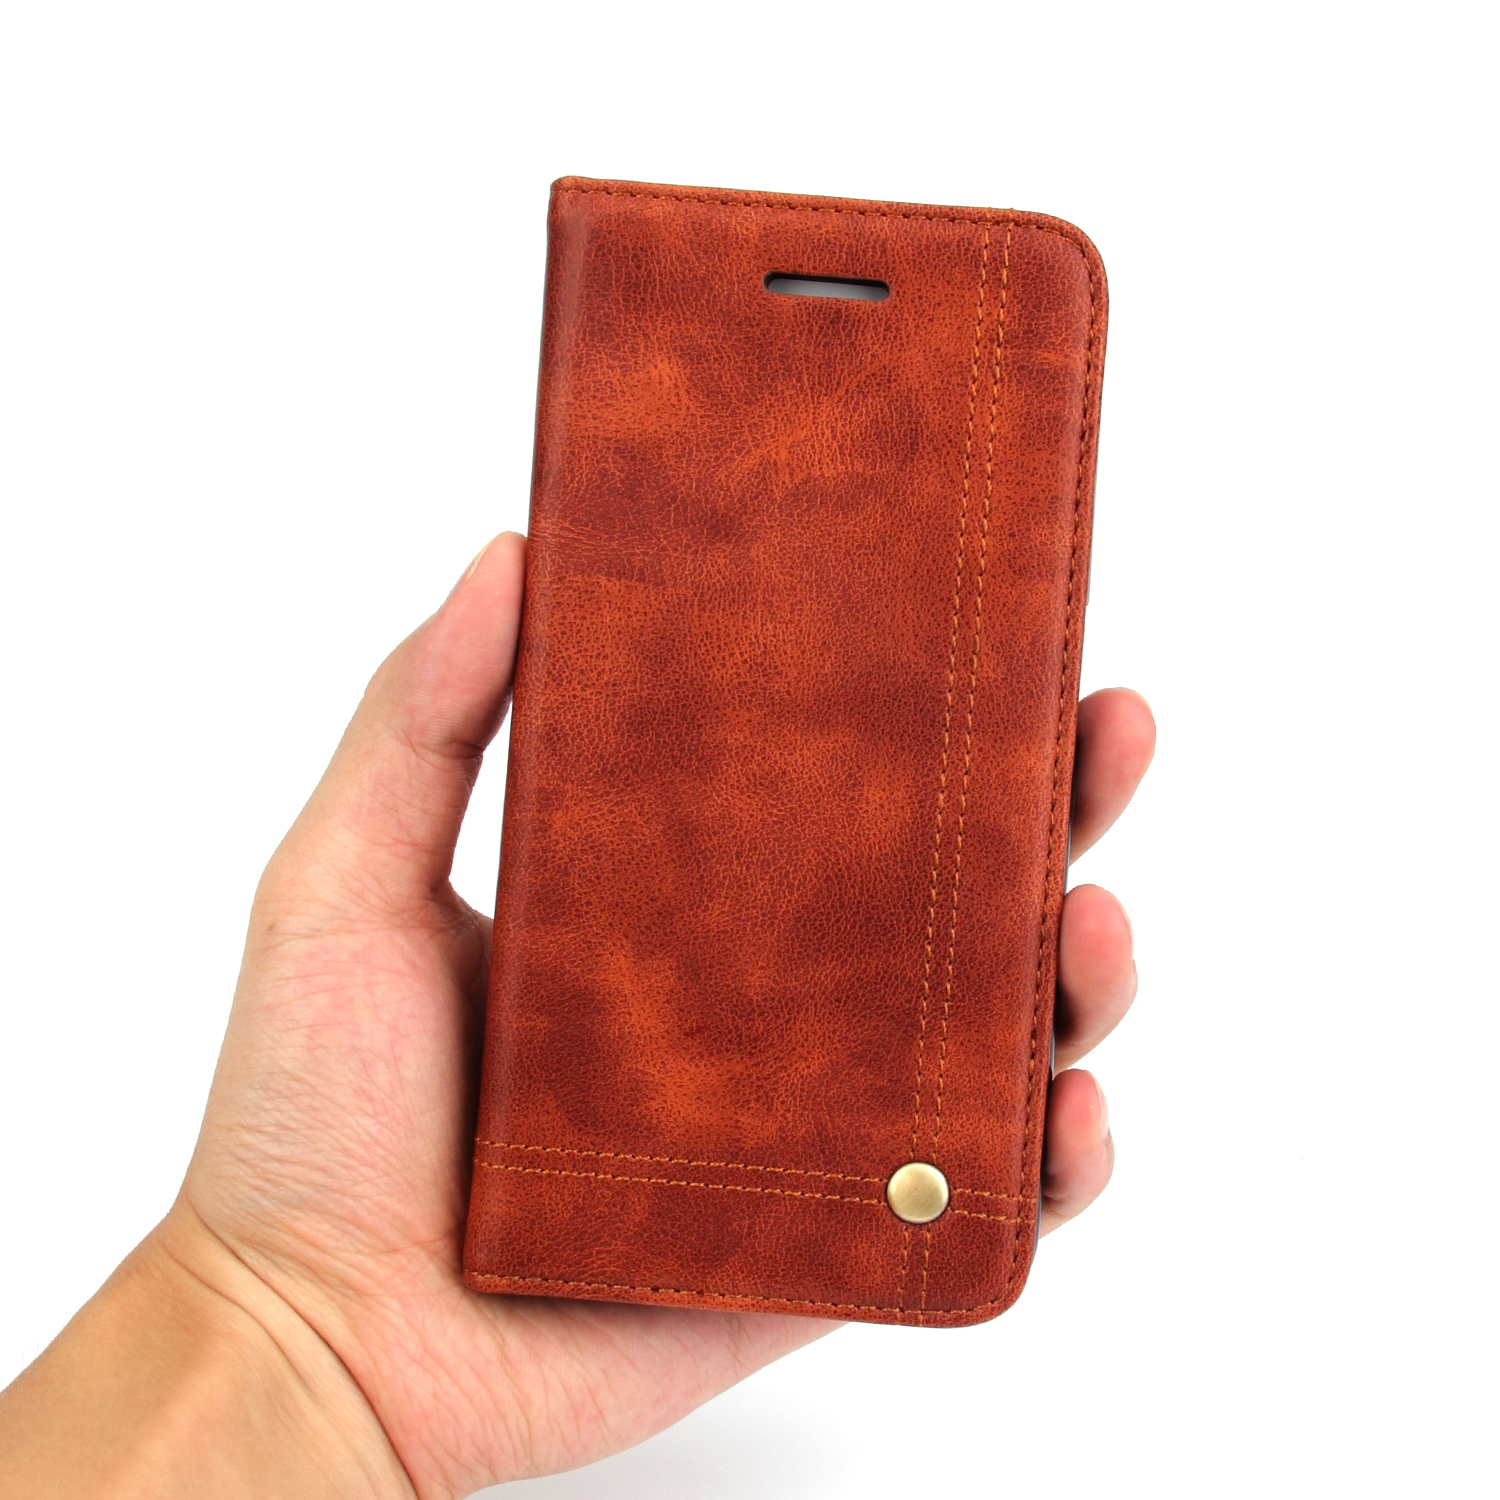 phone cover ihpone iphone 5 case